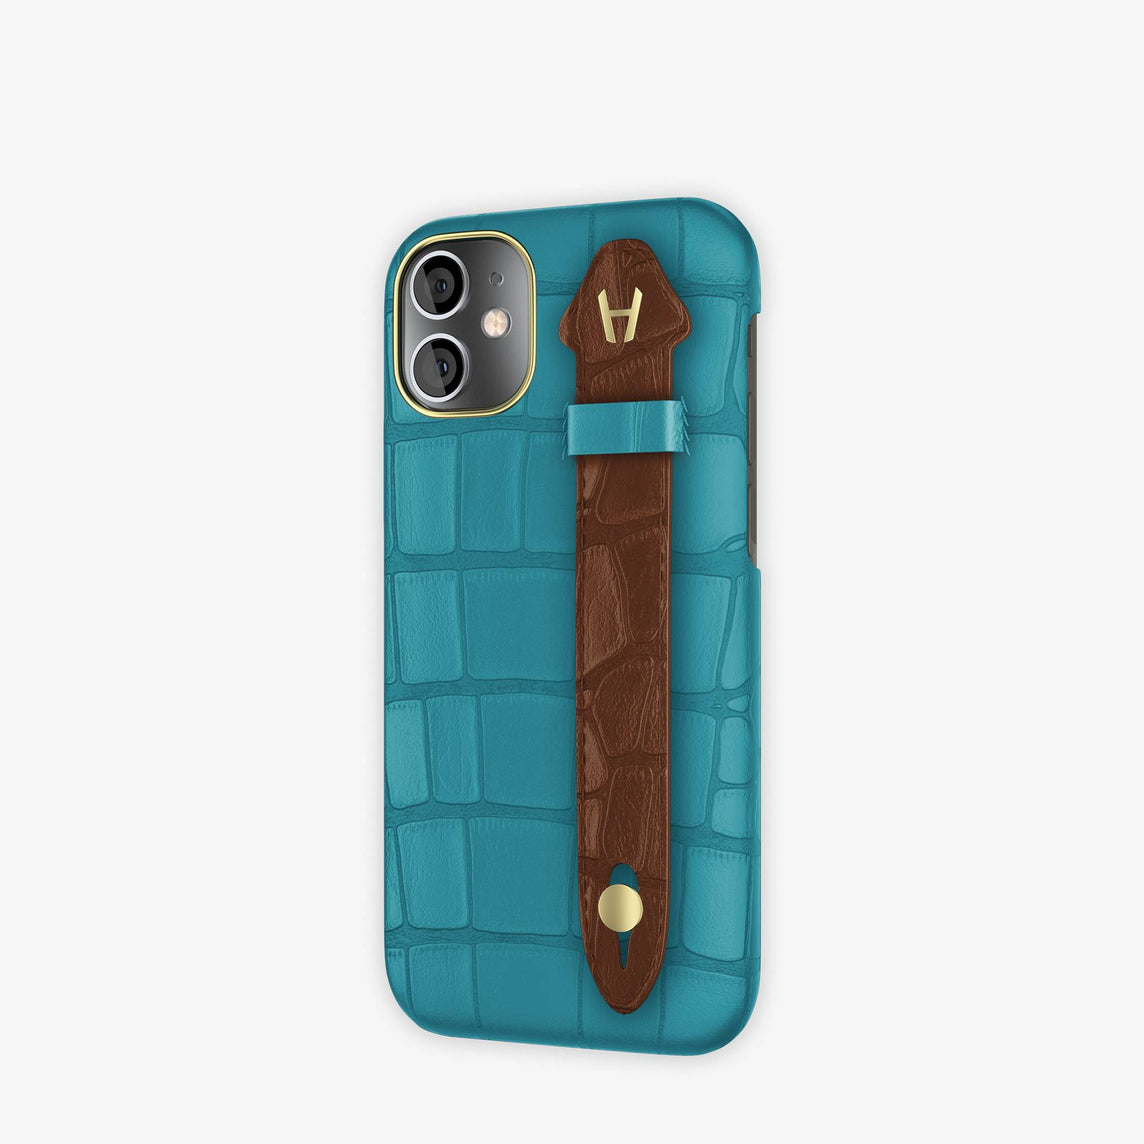 Alligator Side Finger Case iPhone 12 Mini | Blue Teal/Brown Chocolat -Yellow Gold